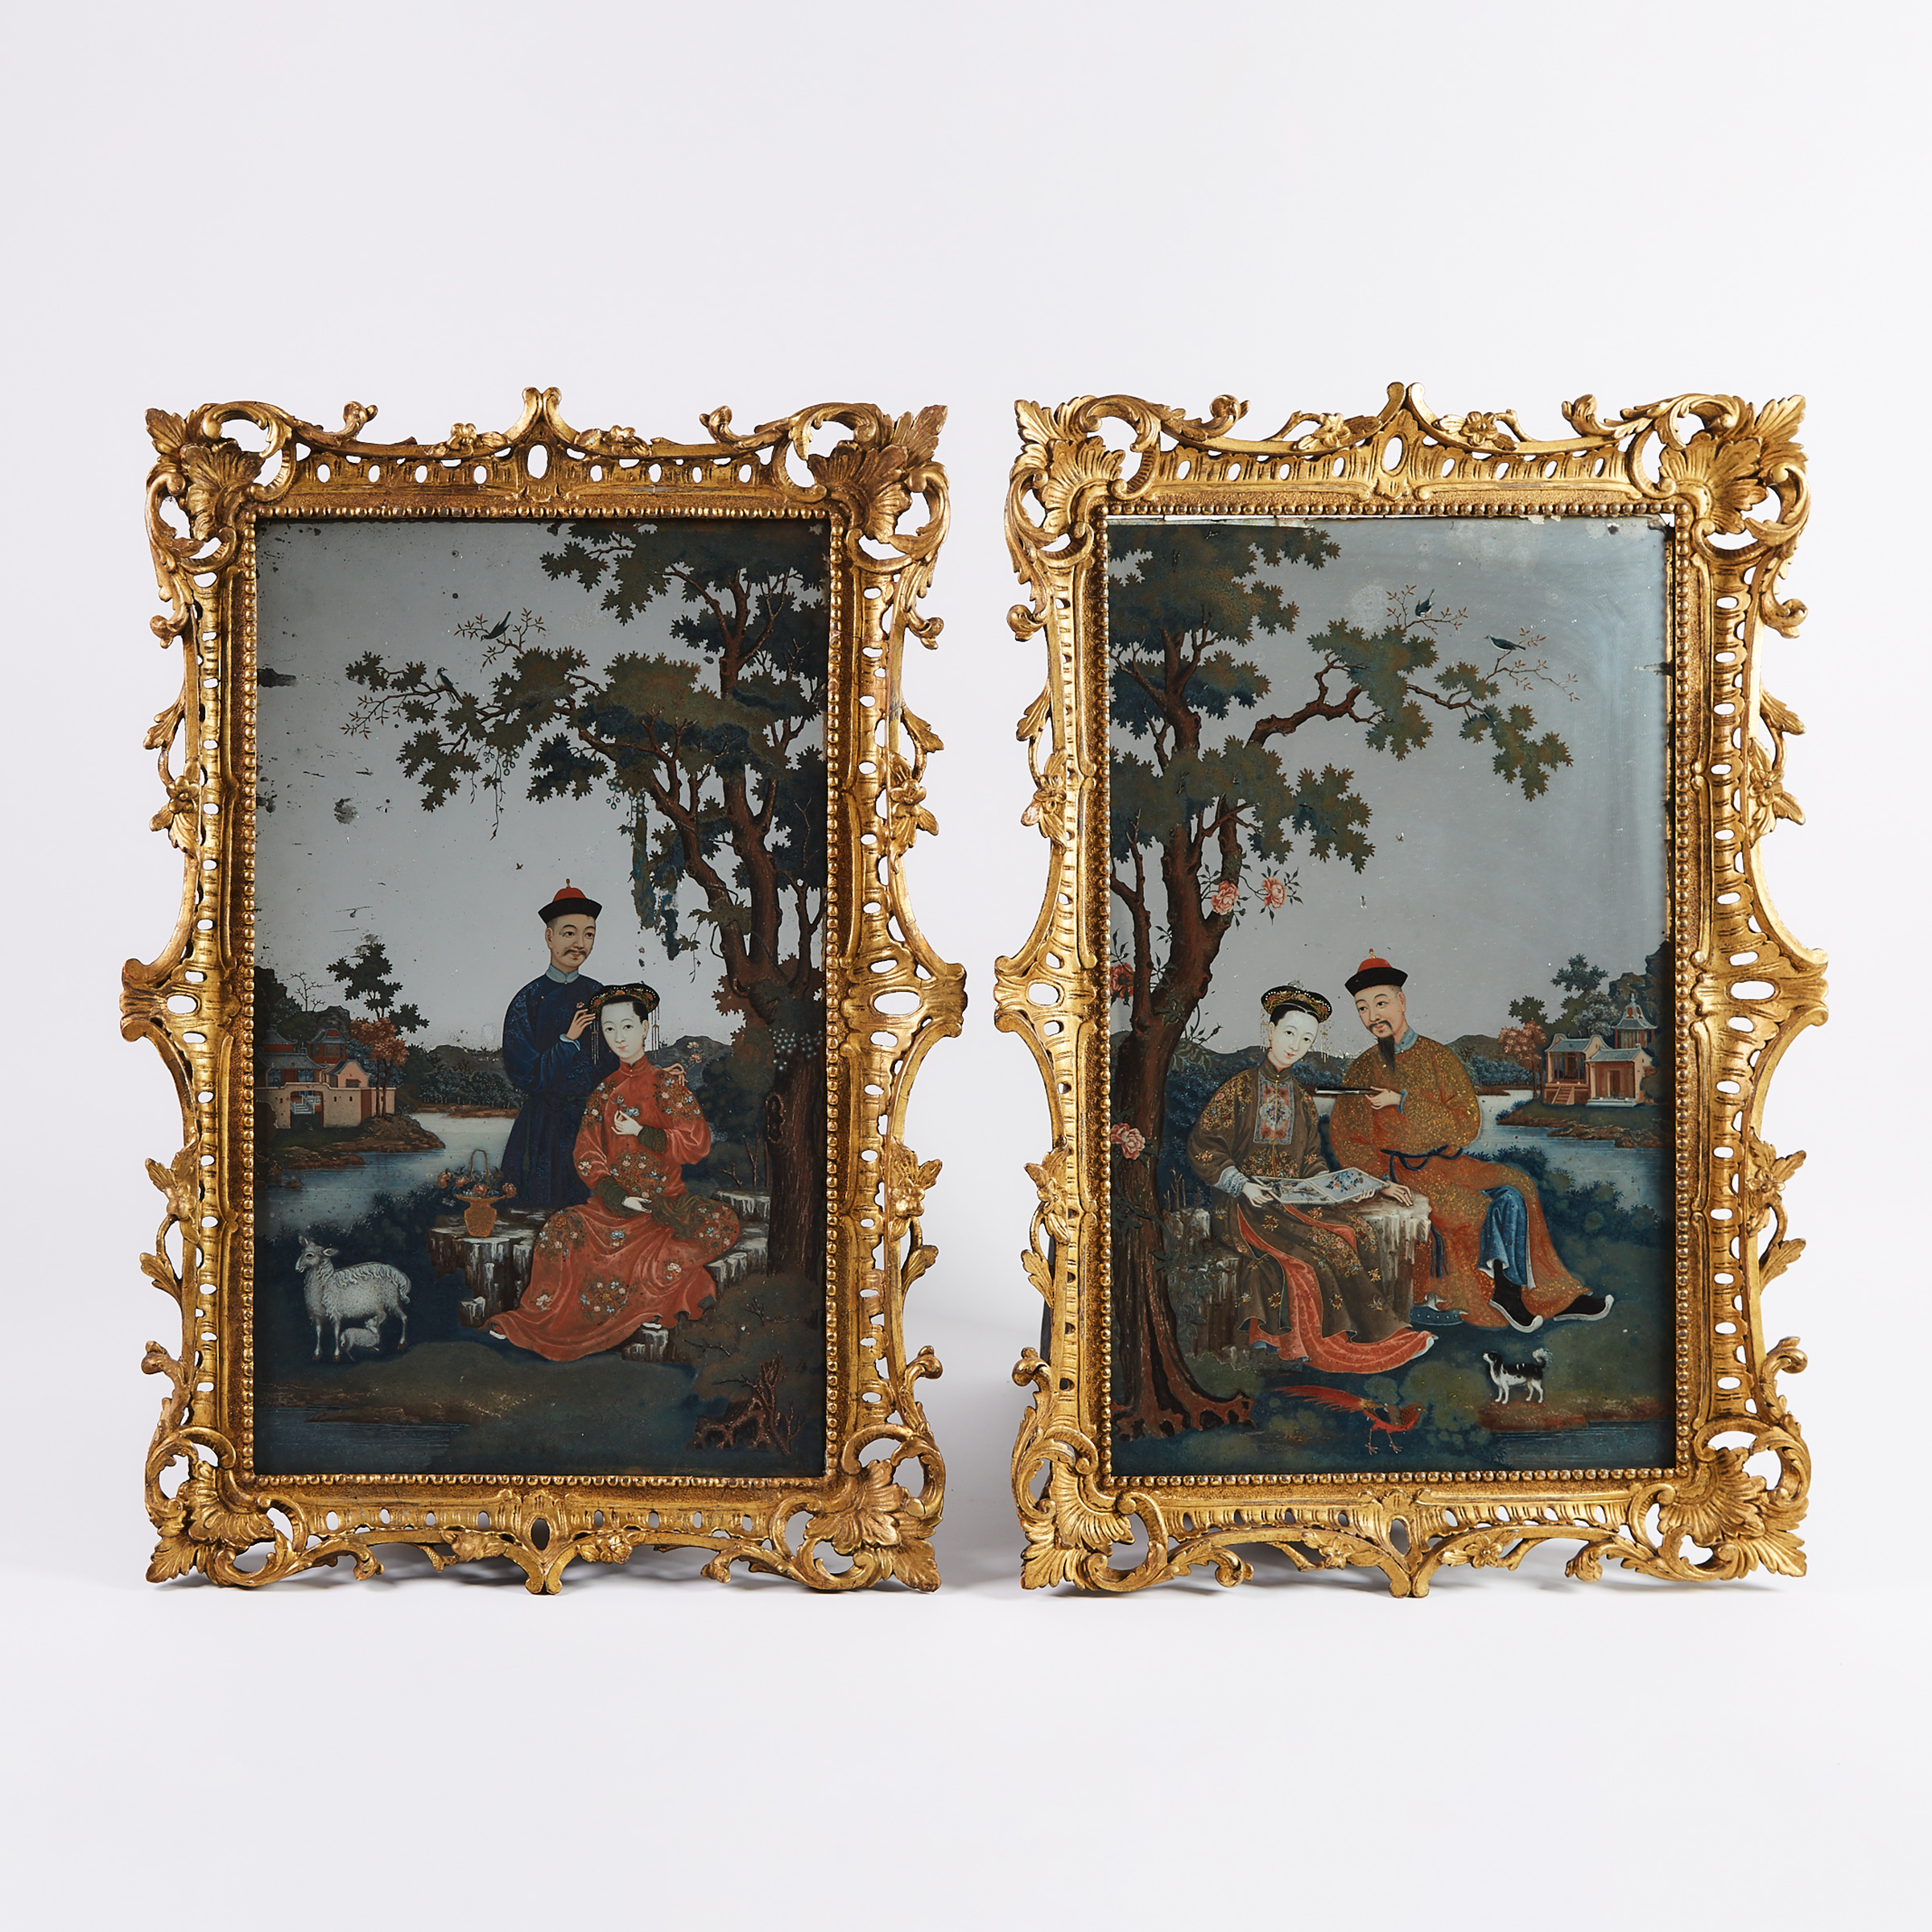 A Pair of Chinese Export Reverse Painted Mirrors, 18th Century